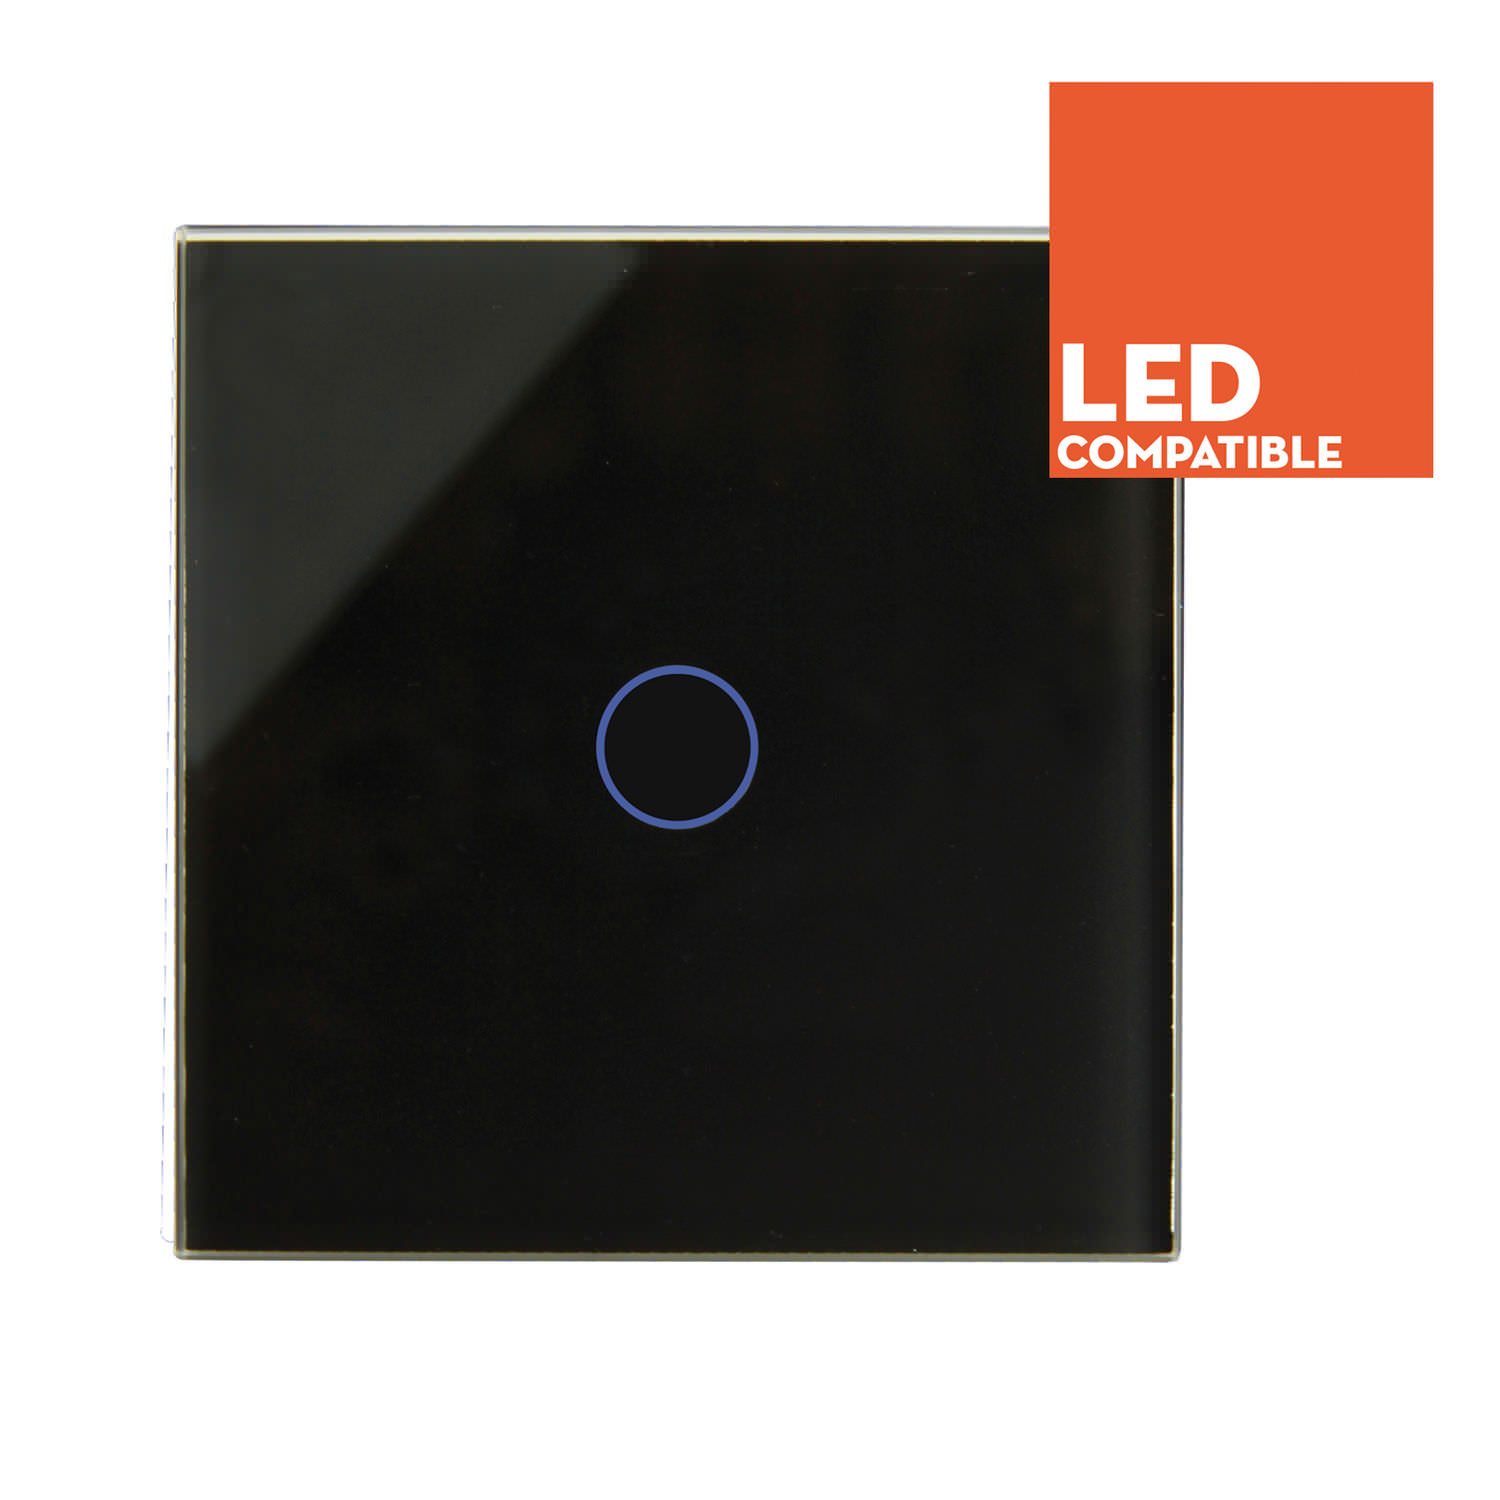 Led Light Switches Dimmers: ... Light dimmer switch / touch / contemporary / with LED indicator 00432  Retrotouch ...,Lighting